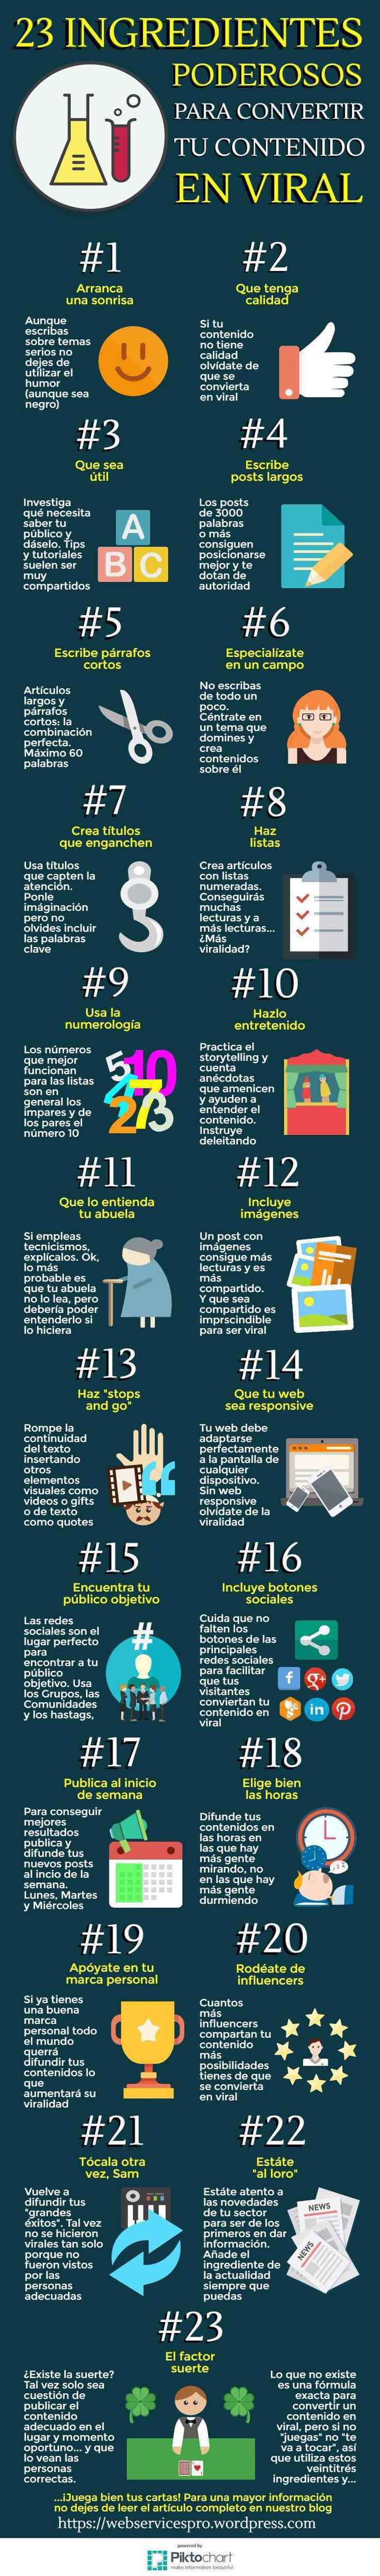 23 INGREDIENTES PARA UN CONTENIDO VIRAL #INFOGRAFIA #INFOGRAPHIC #MARKETING